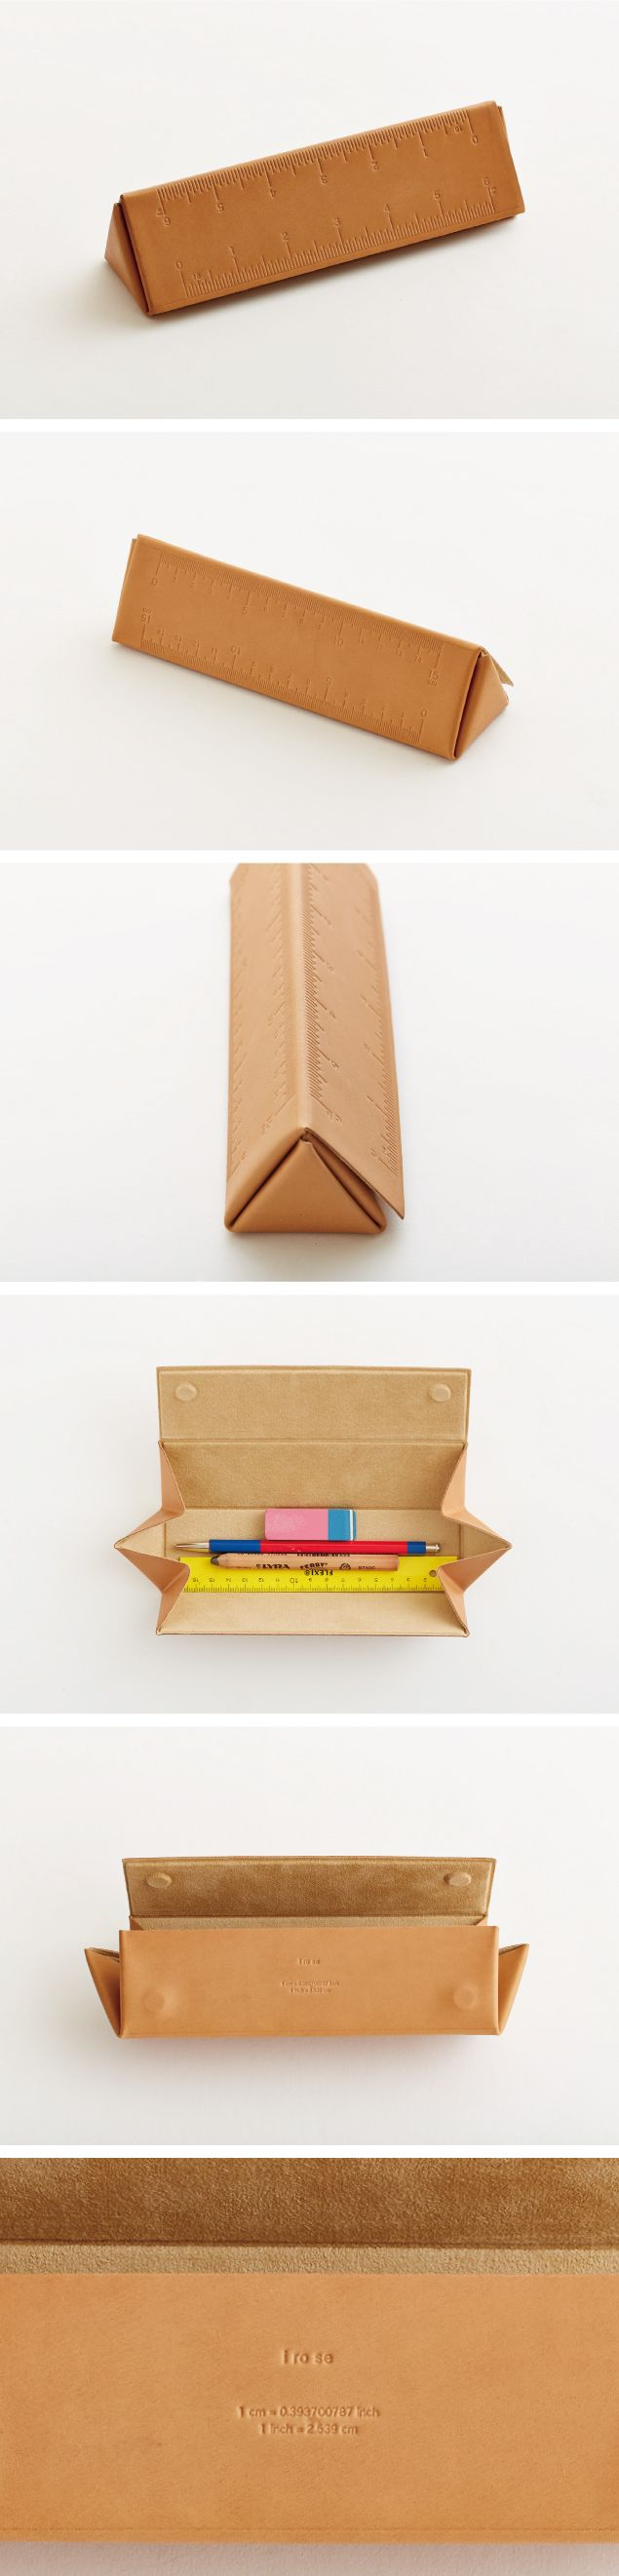 i ro se triangular scale pen case